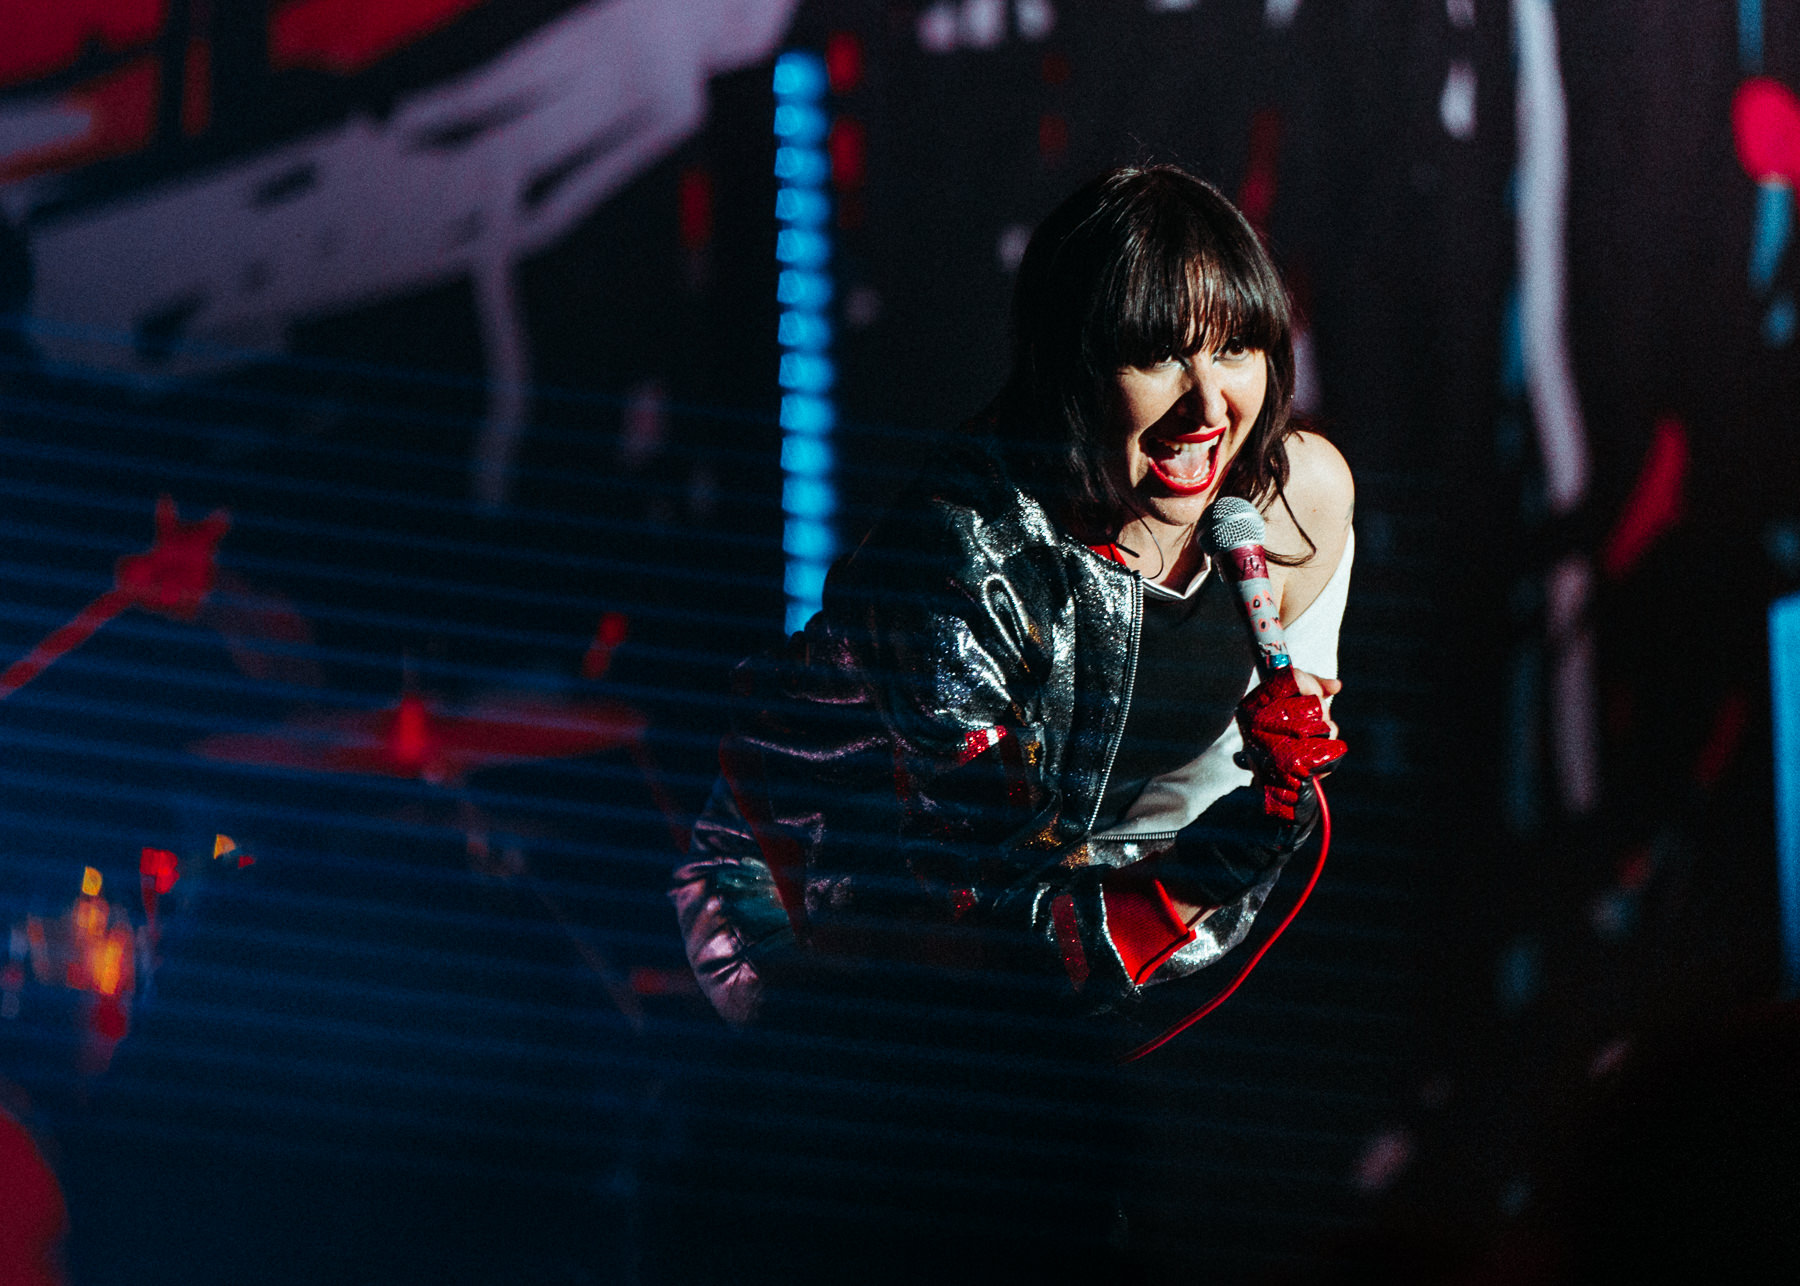 180506-kirby-gladstein-photograpy-Yeah-Yeah-Yeahs-Hollywood-Bowl-LA-7192.jpg